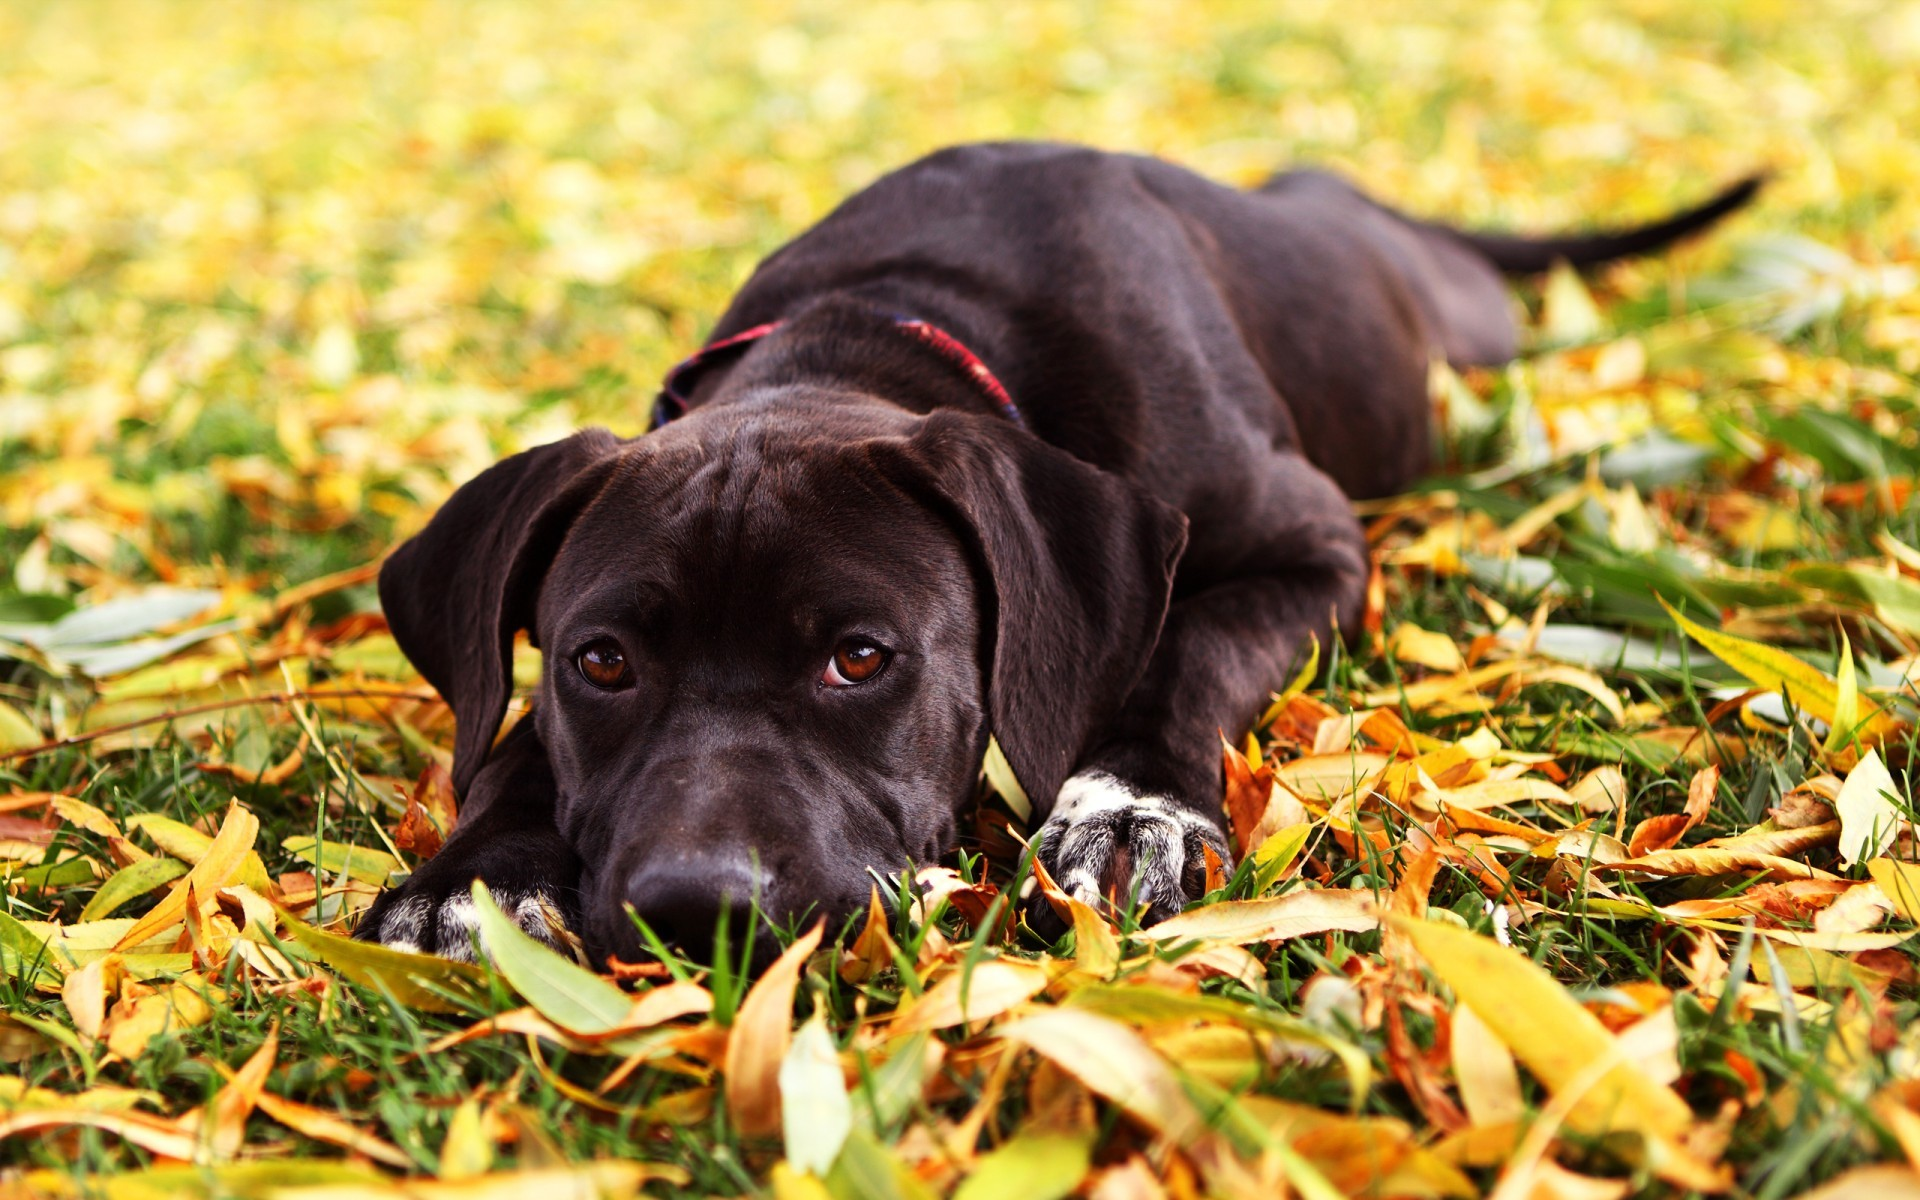 15474 download wallpaper Animals, Dogs, Autumn screensavers and pictures for free